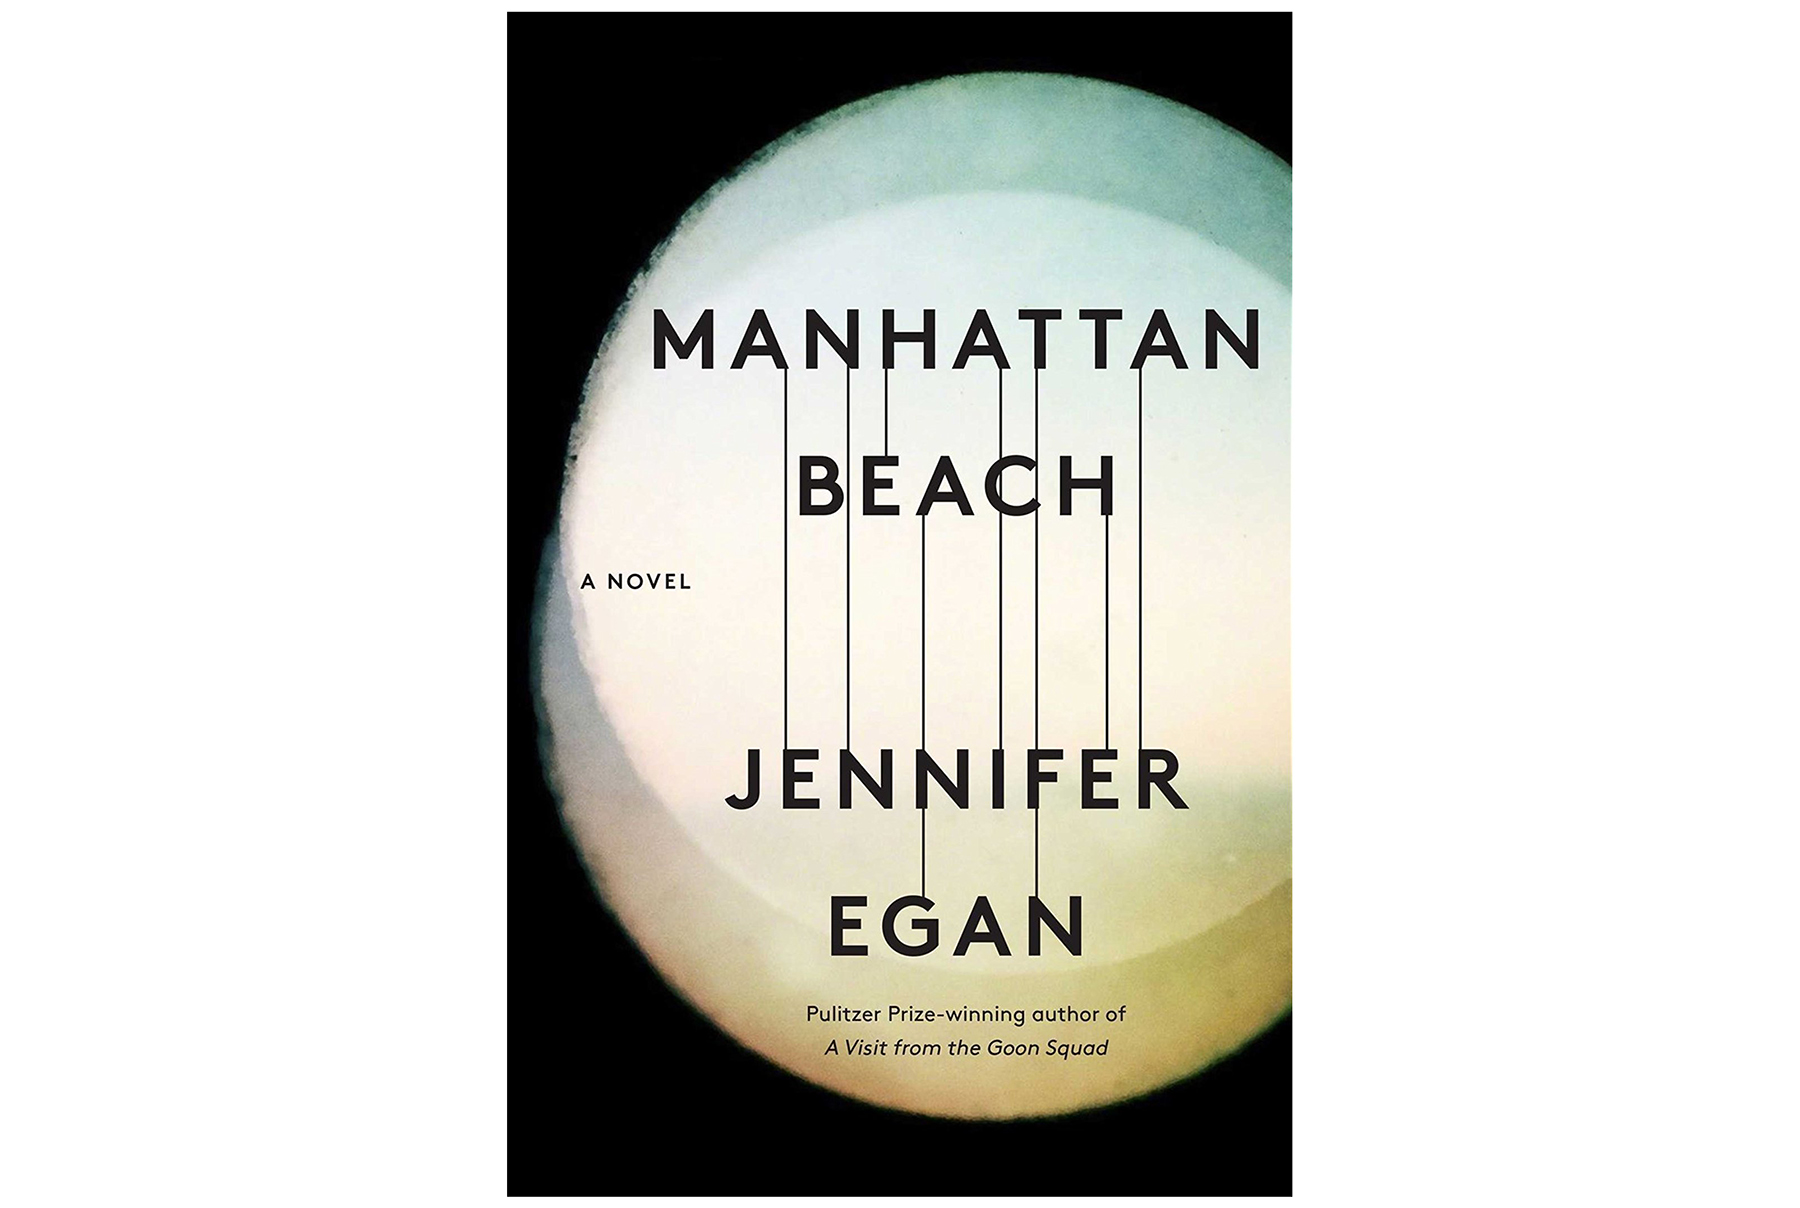 Manhattan Beach, by Jennifer Egan